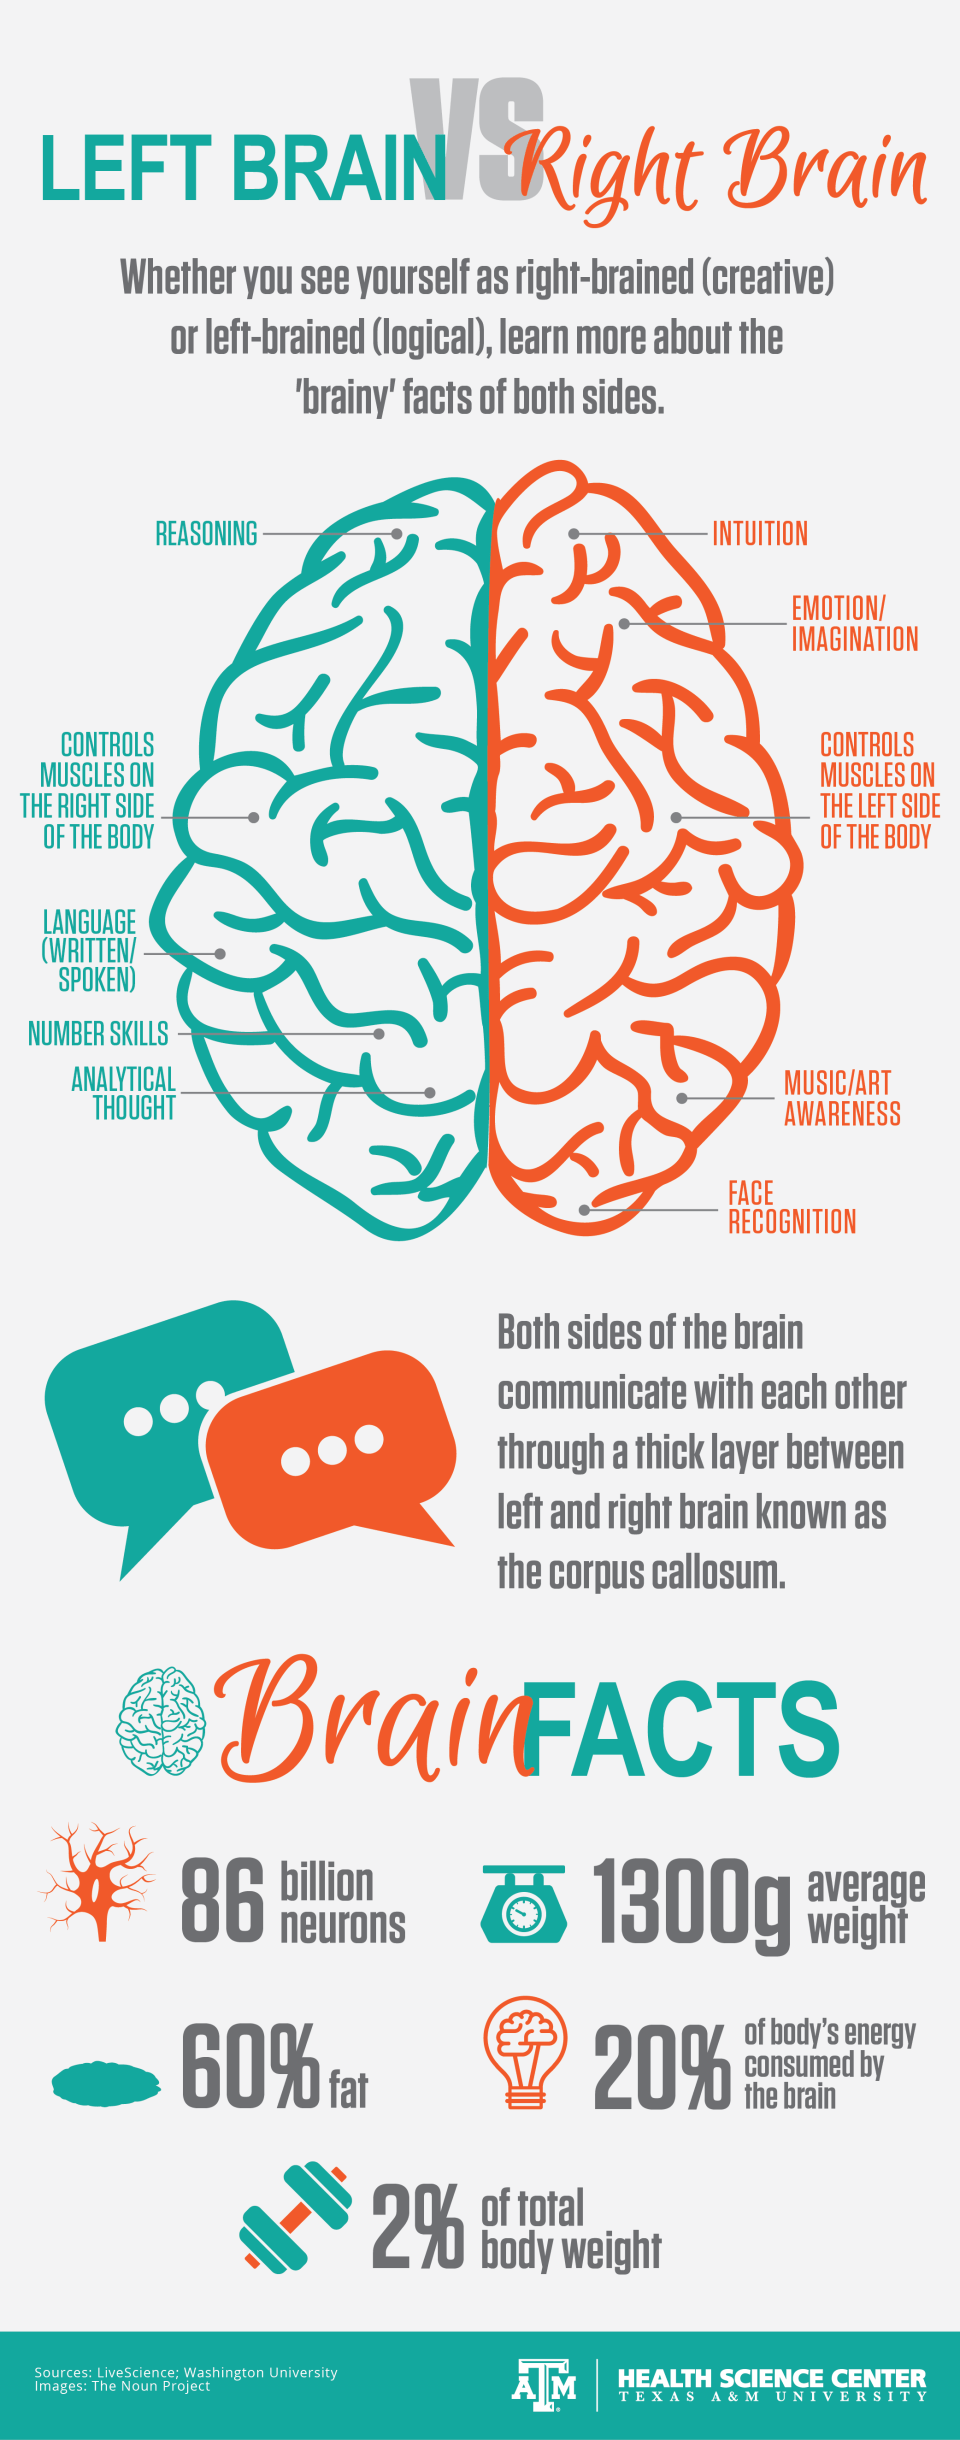 Infographic about left brain and right brain characteristics and facts about the brain anatomy